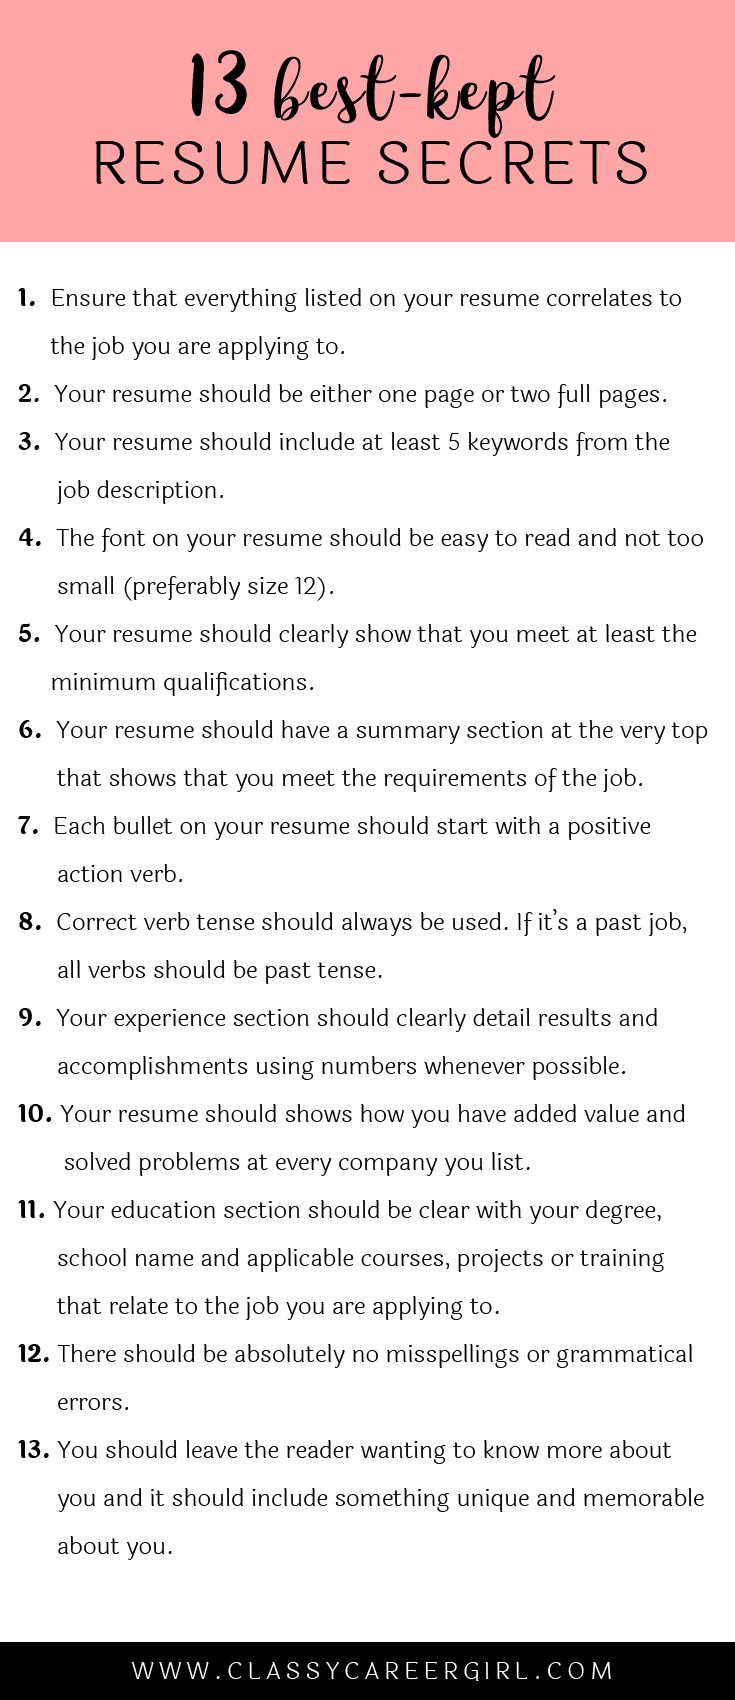 Opposenewapstandardsus  Wonderful  Ideas About Resume On Pinterest  Cv Format Resume Cv And  With Handsome Some Hiring Managers Will Toss Your Resume Out If You Dont Know These  With Breathtaking Administrative Skills Resume Also High School Resume No Experience In Addition How To Make A Modeling Resume And Resume Spider As Well As Results Driven Resume Additionally Really Good Resume From Pinterestcom With Opposenewapstandardsus  Handsome  Ideas About Resume On Pinterest  Cv Format Resume Cv And  With Breathtaking Some Hiring Managers Will Toss Your Resume Out If You Dont Know These  And Wonderful Administrative Skills Resume Also High School Resume No Experience In Addition How To Make A Modeling Resume From Pinterestcom